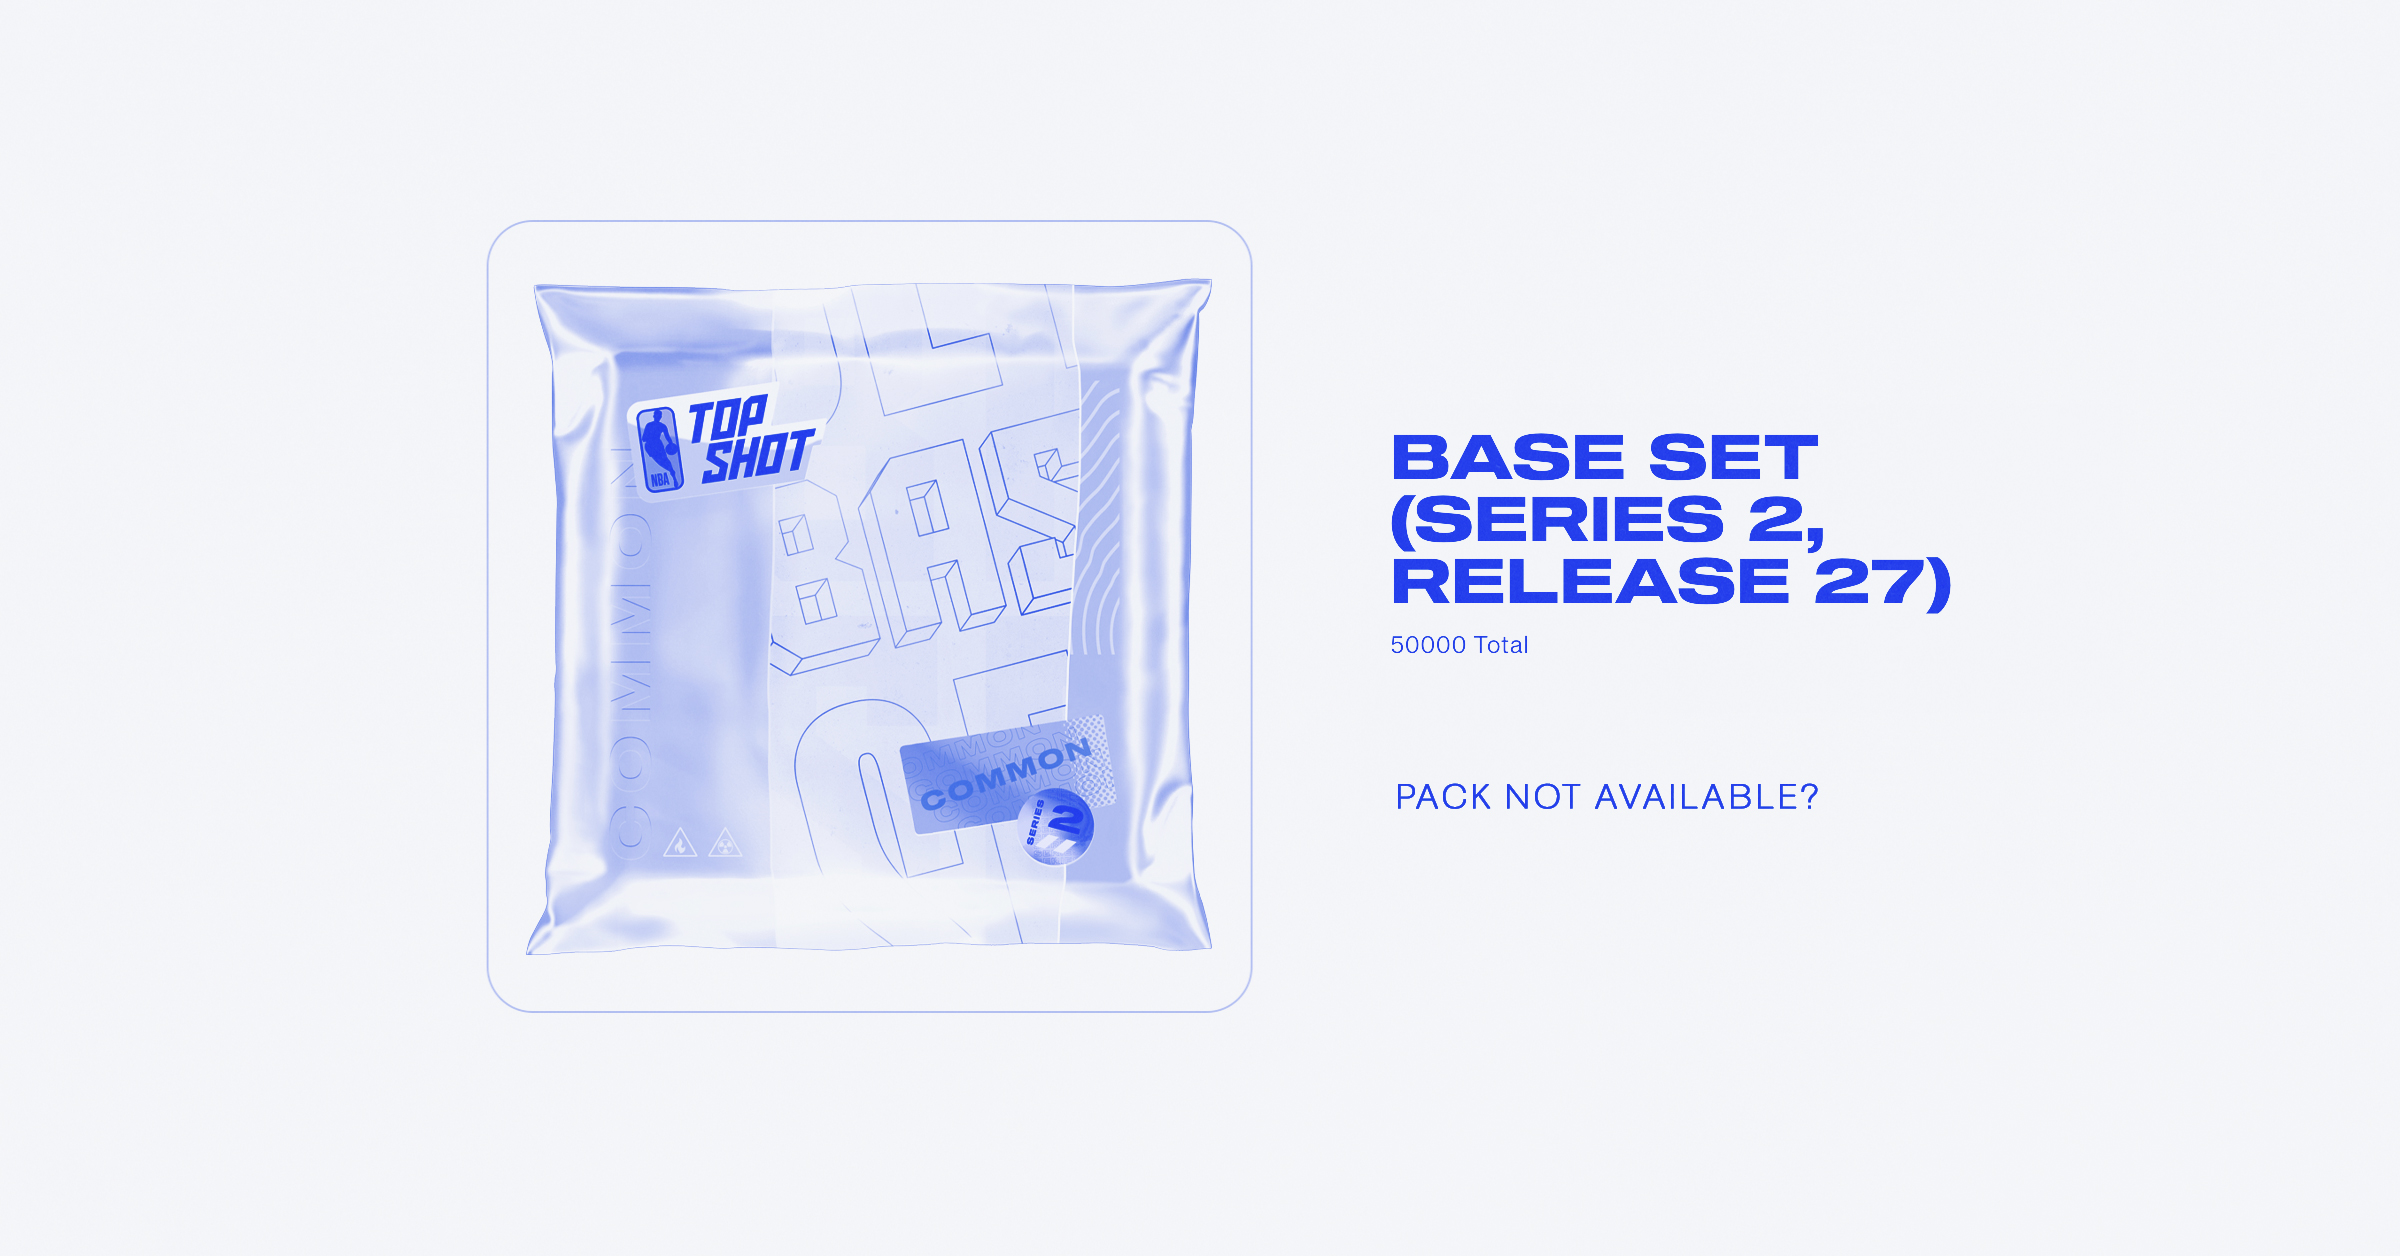 In April, NBA Top Shot scheduled Series 2, Release 27 Base Set Pack Drop. But it still hasn't dropped. So what happened to these Top Shot packs?